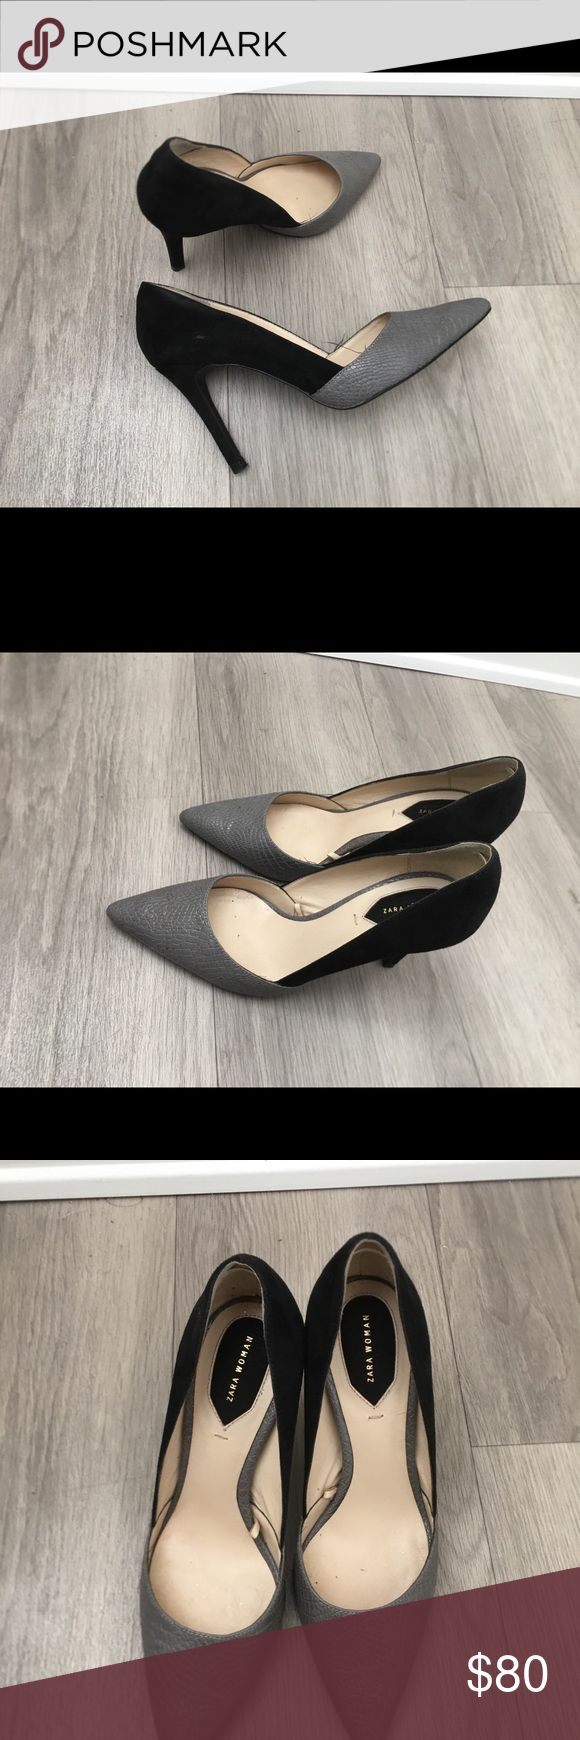 Two-color tone Heels by Zara Size 6 Grey leather and Black Suede - two tone heels Zara Shoes Heels